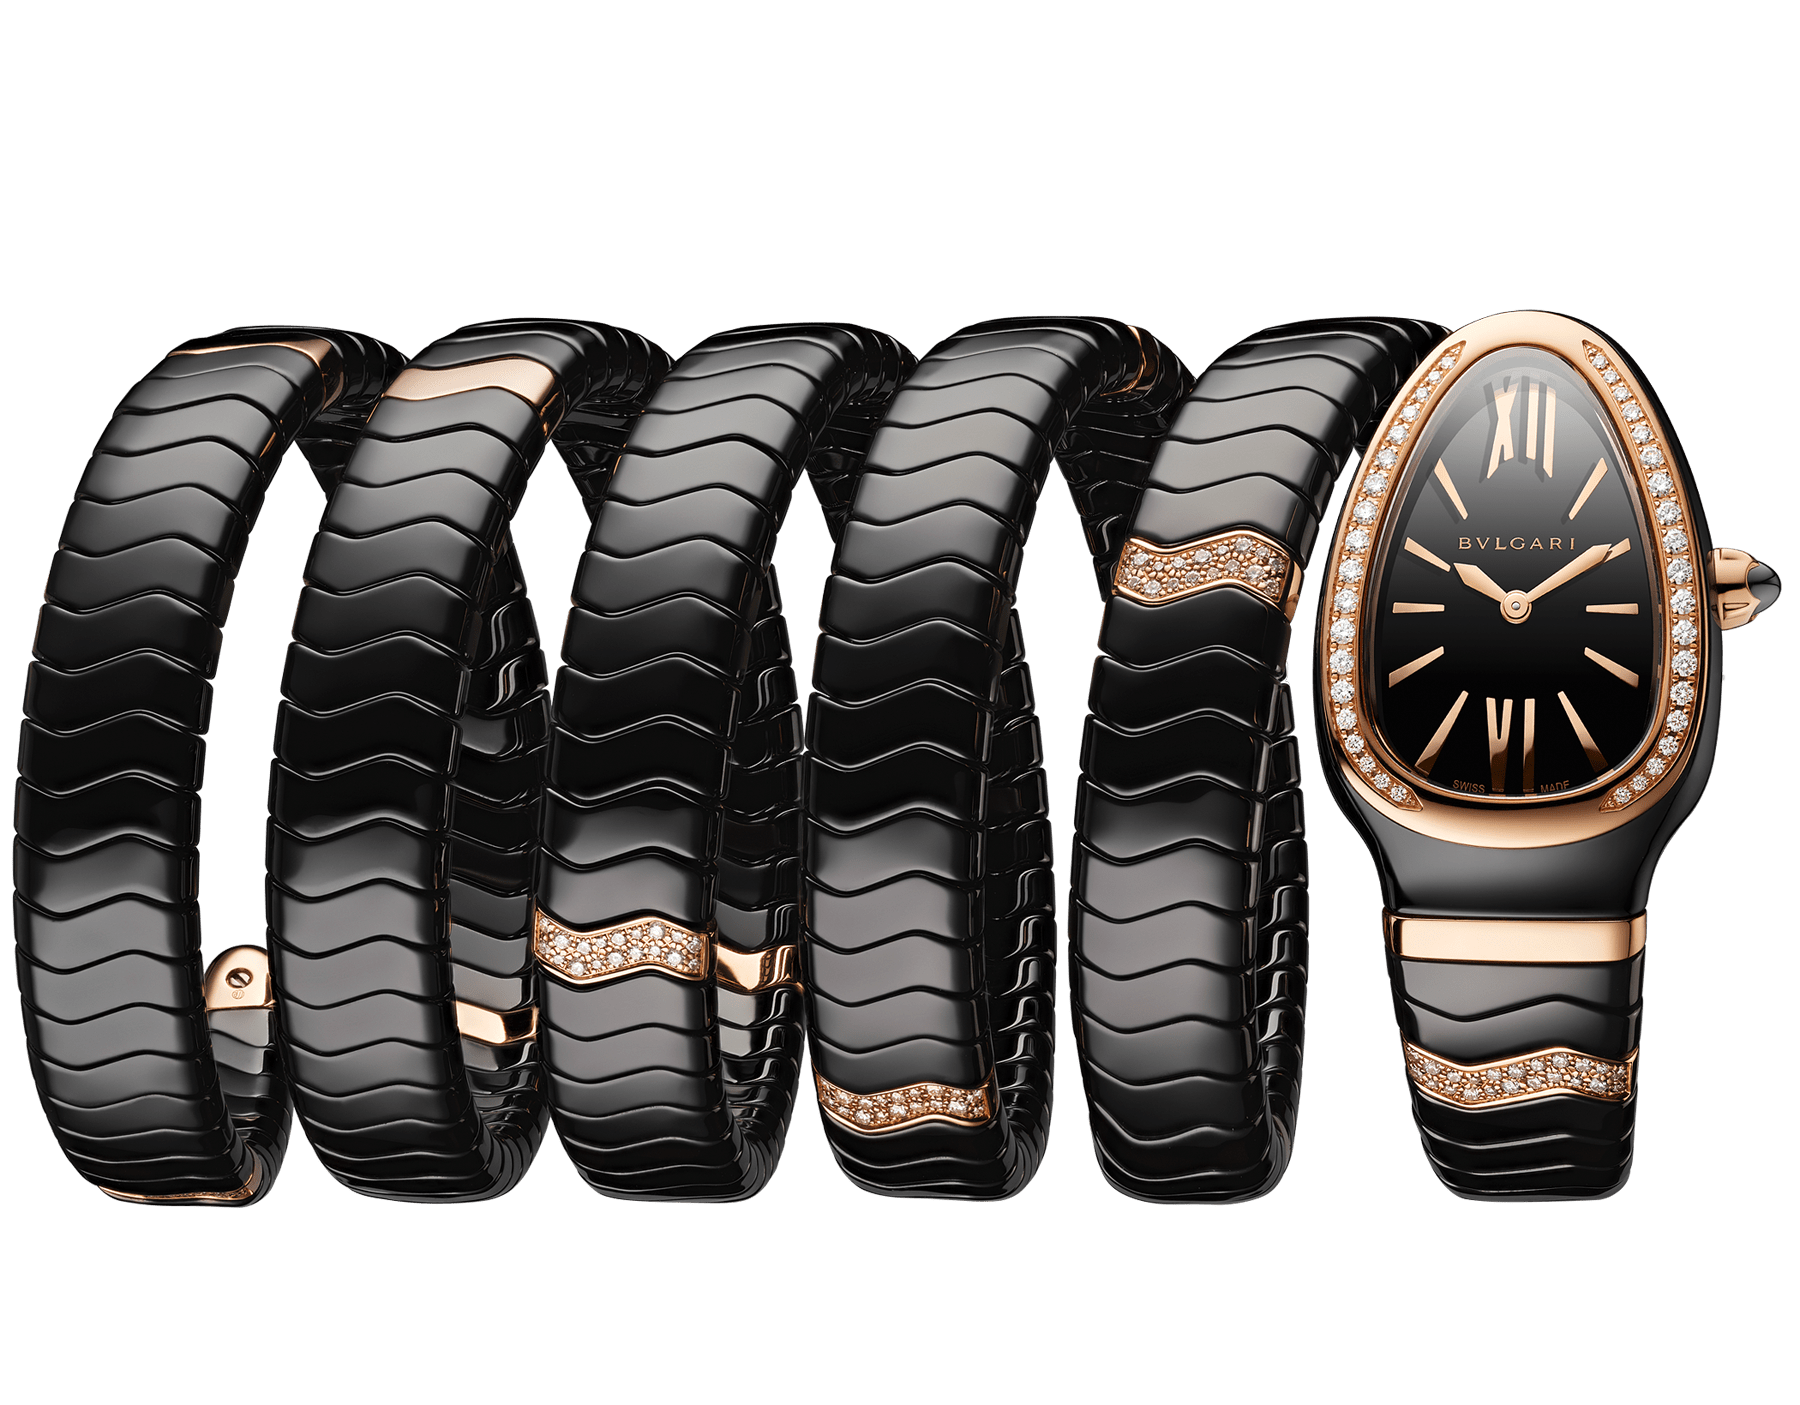 Serpenti Spiga five-spiral watch with black ceramic case, 18 kt rose gold bezel set with diamonds, black lacquered dial, black ceramic bracelet set with 18 kt rose gold elements and diamonds 102888 image 1